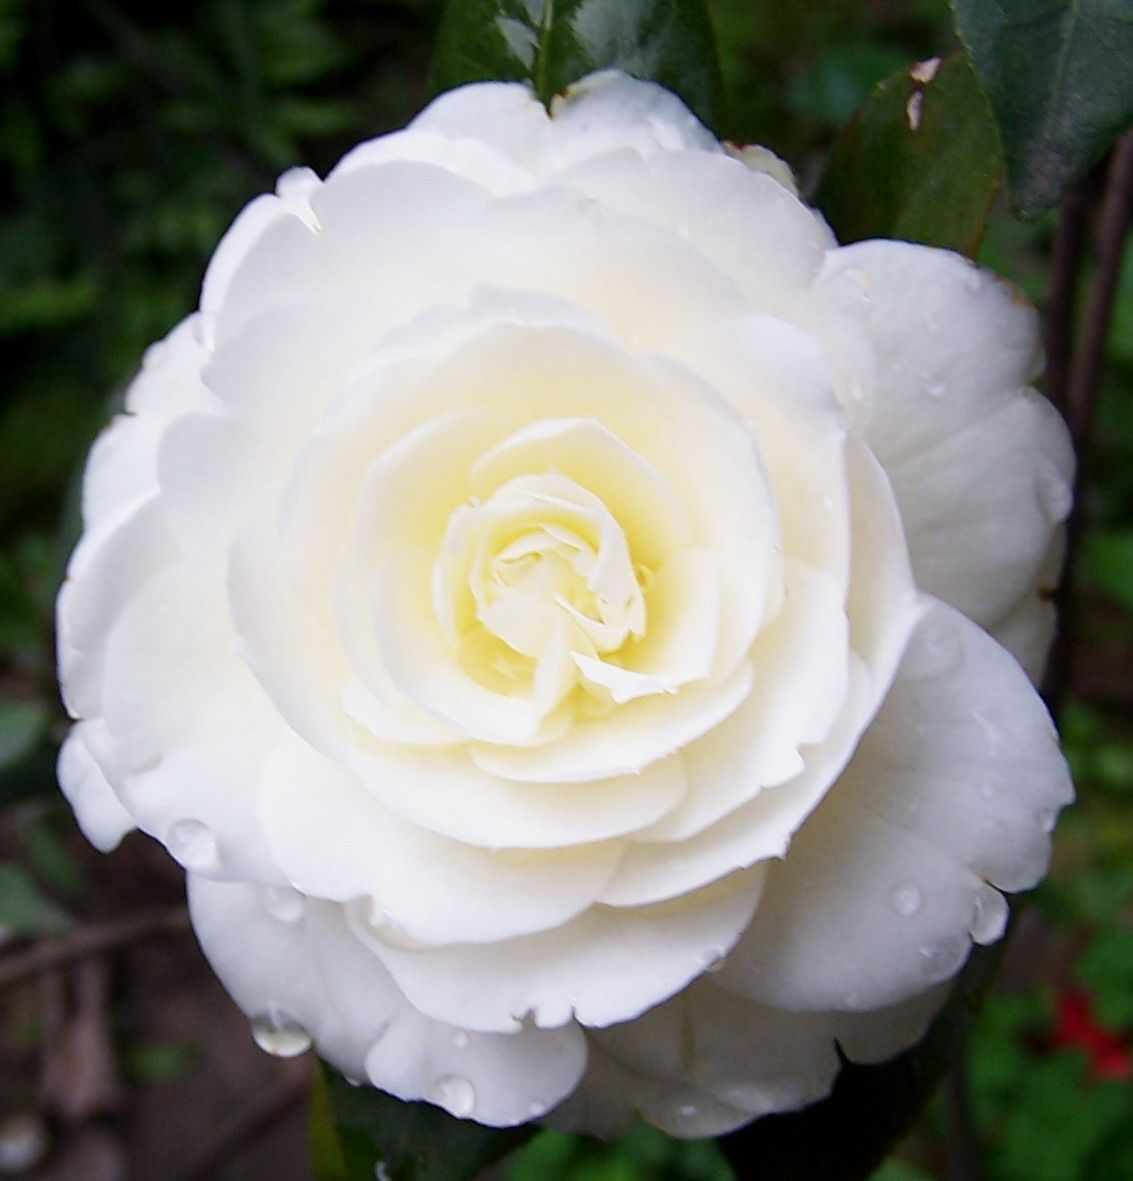 If You Want A Real Flower You Probably Can T Go Wrong With A Camellia Which Are Beautiful And Simple Description From Camellia Flower White Camellia Flowers